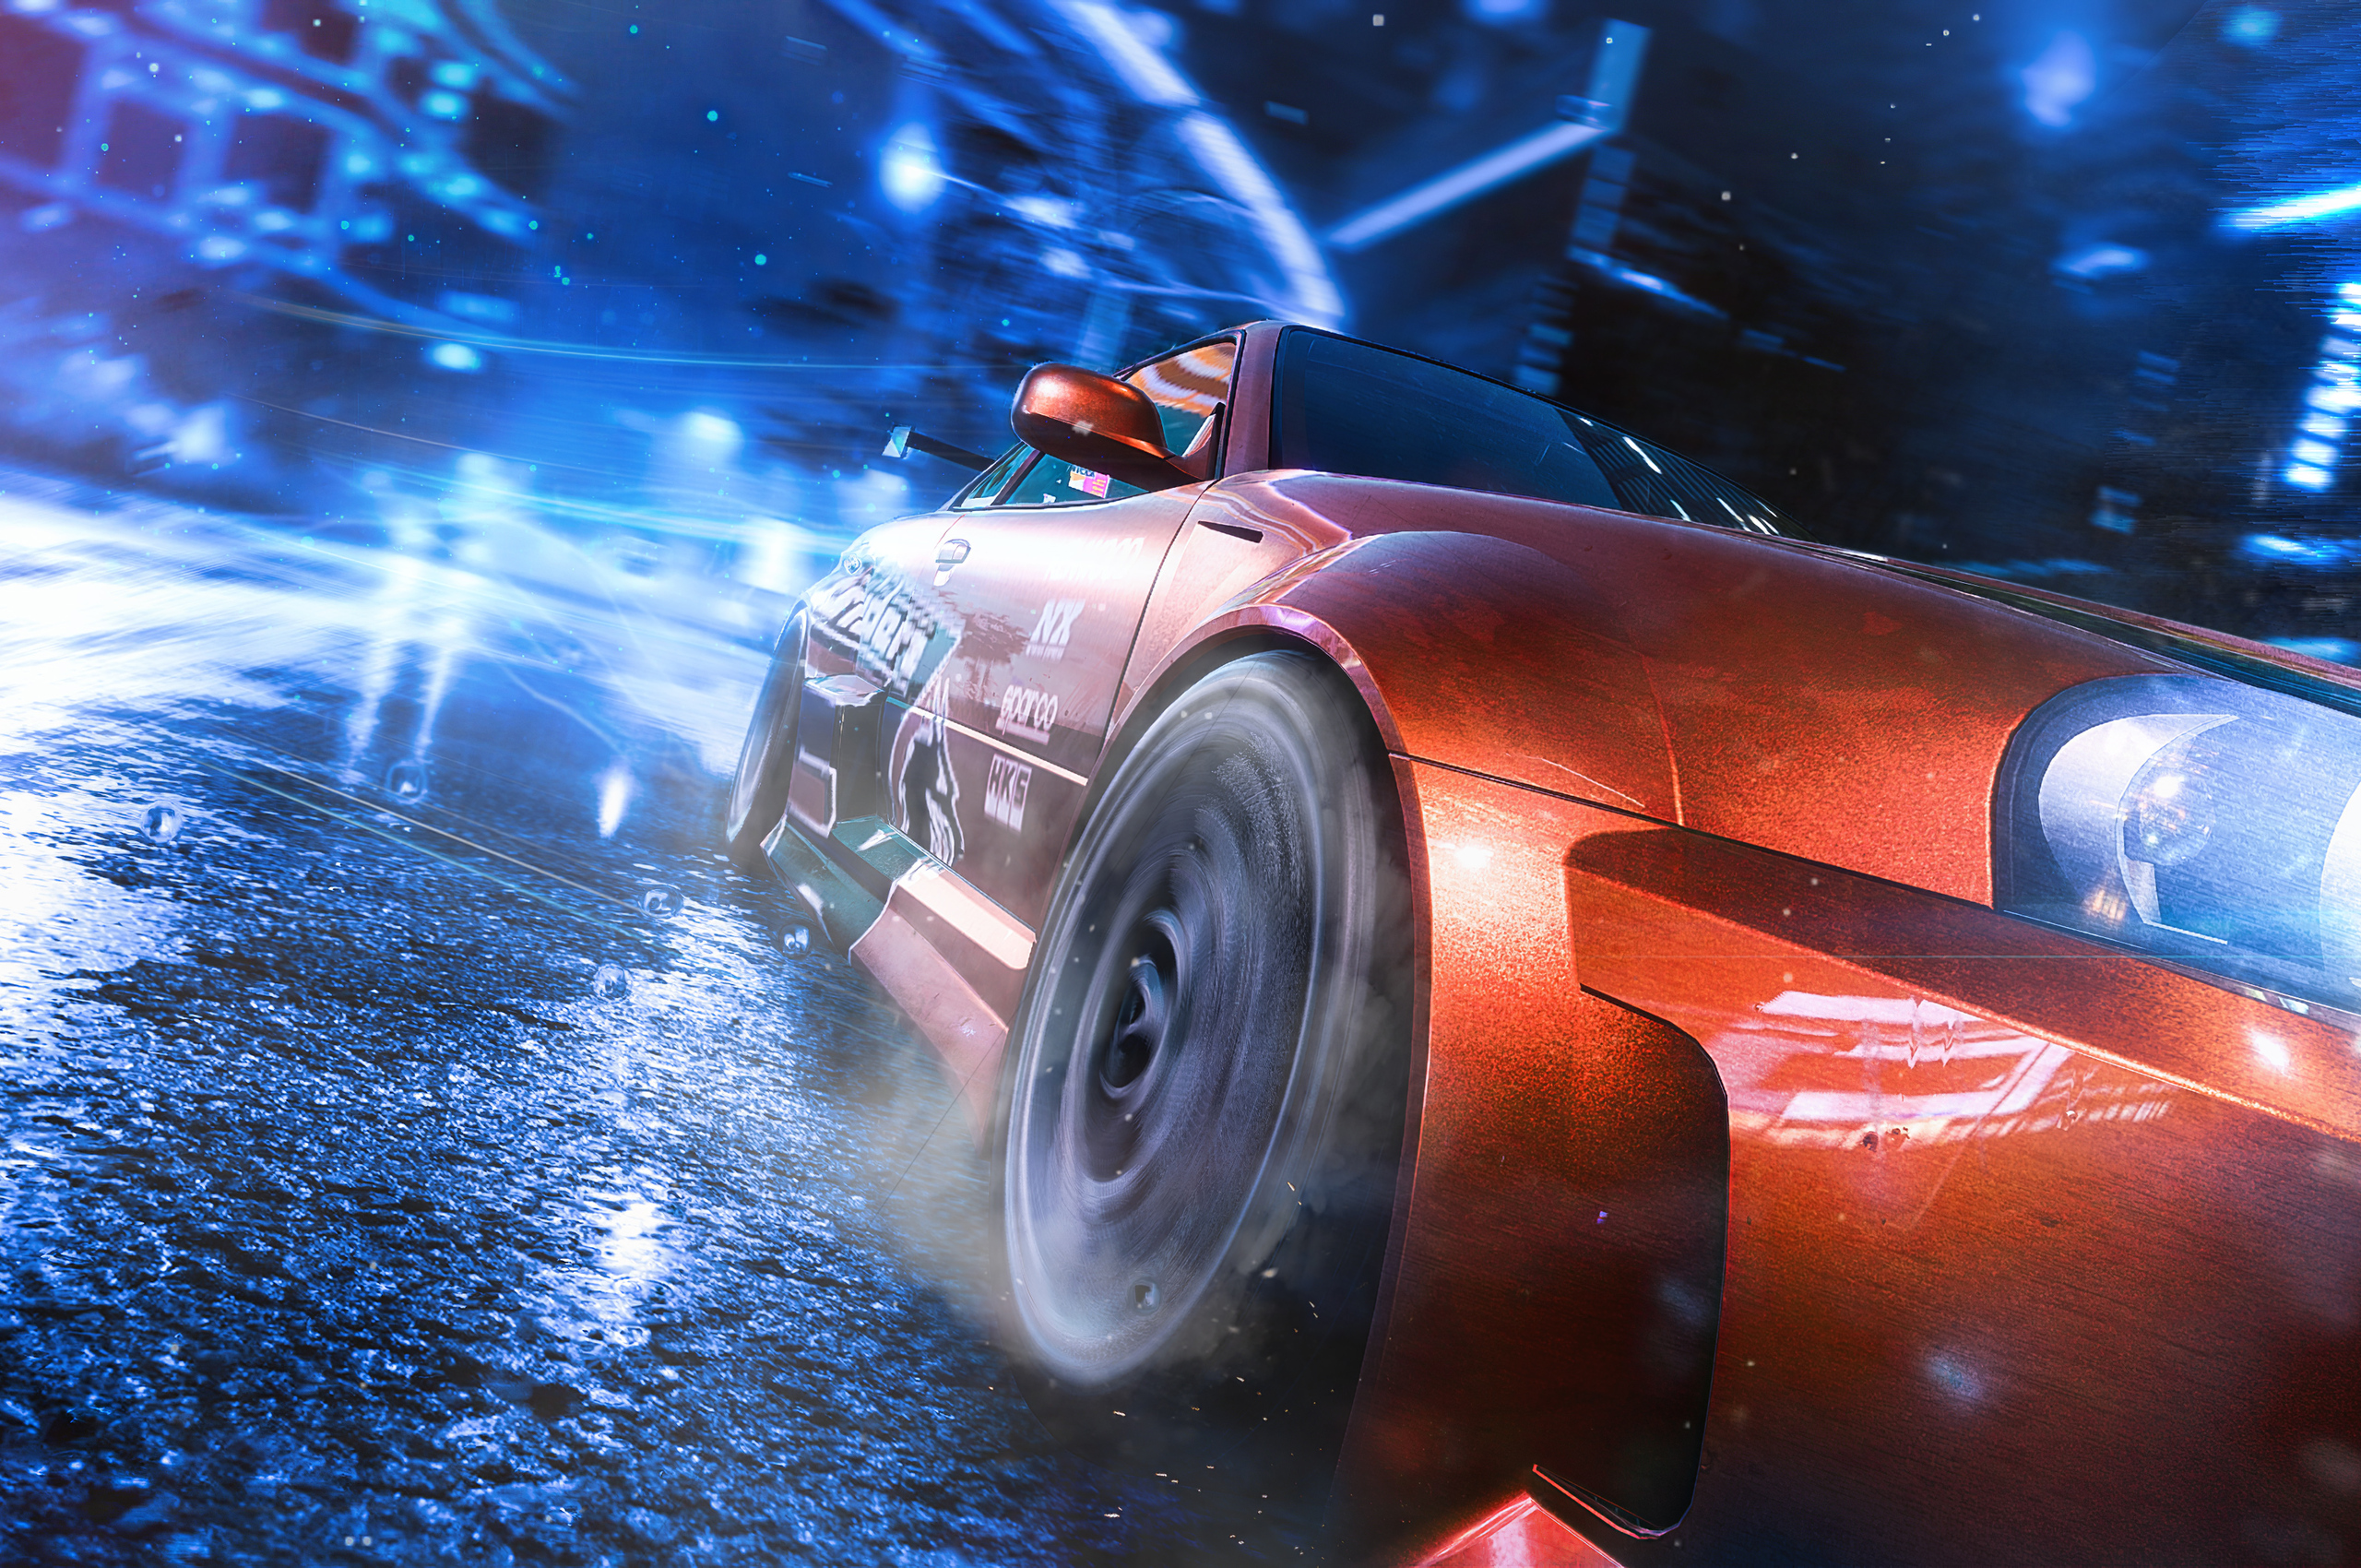 2560x1700 Need For Speed Underground Cover 4k Chromebook Pixel Hd